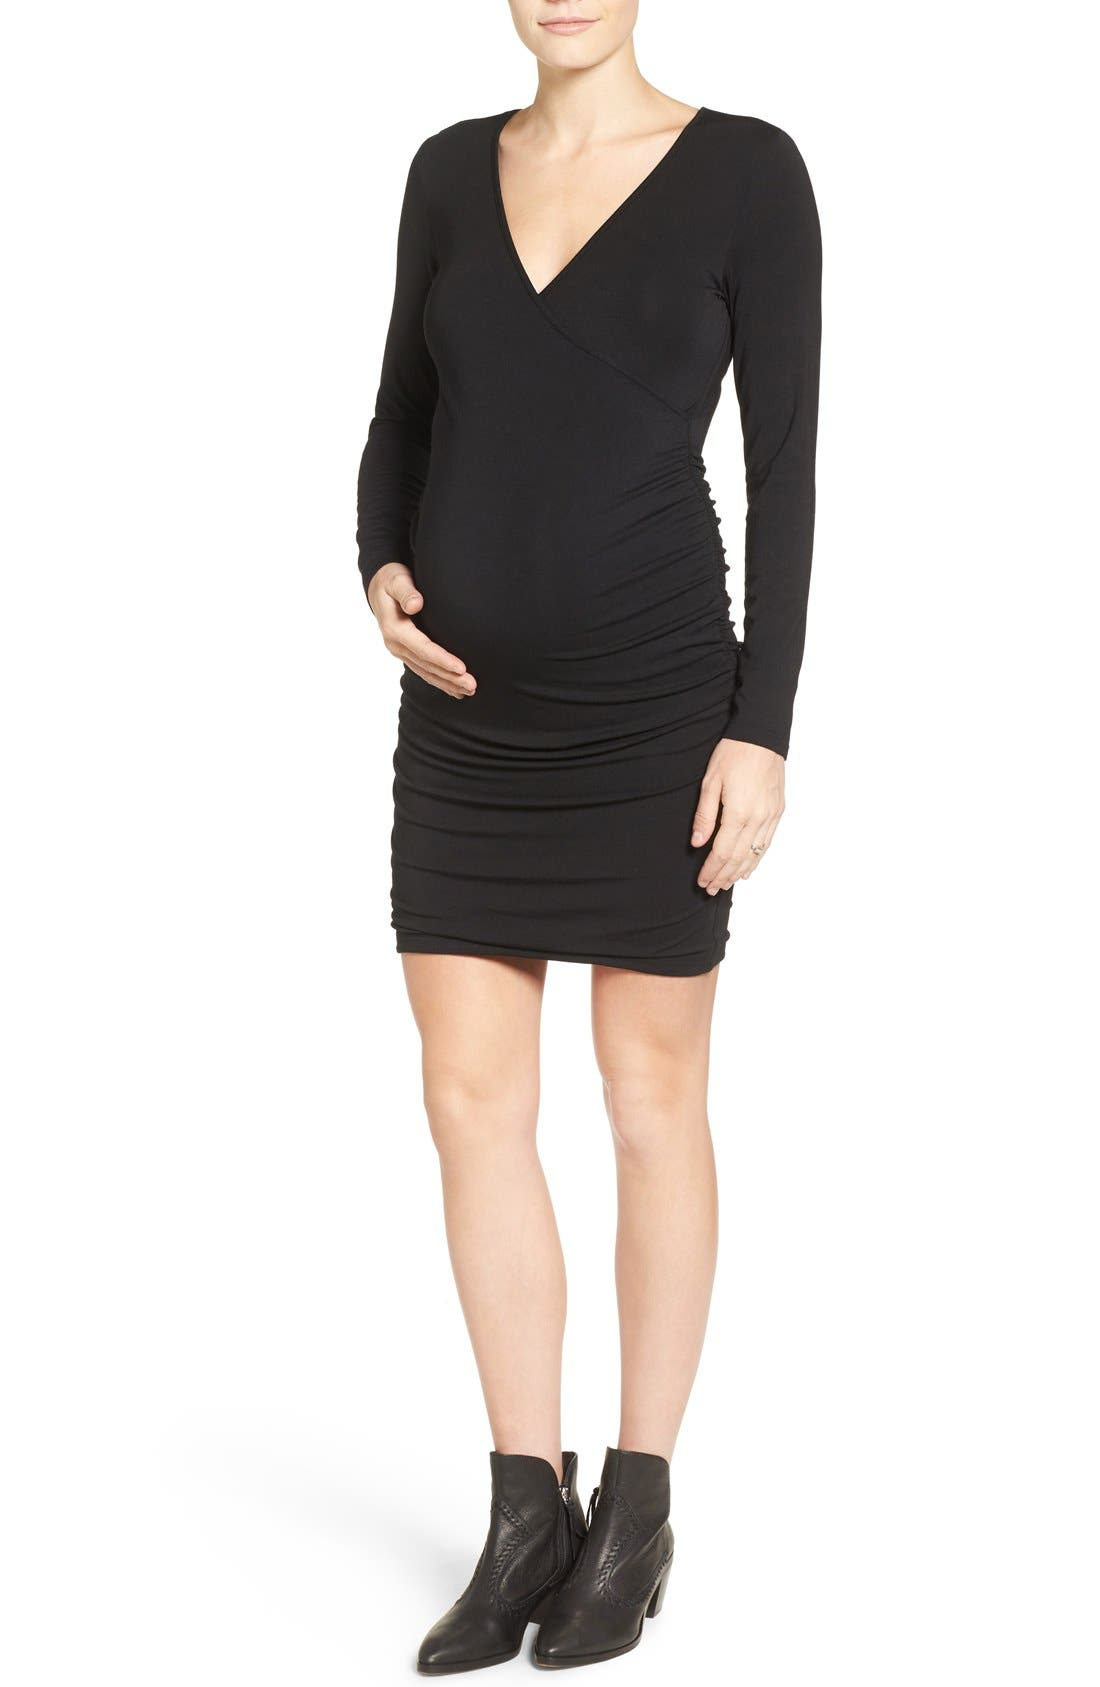 Tart 'Peaches' Maternity Body-Con Dress